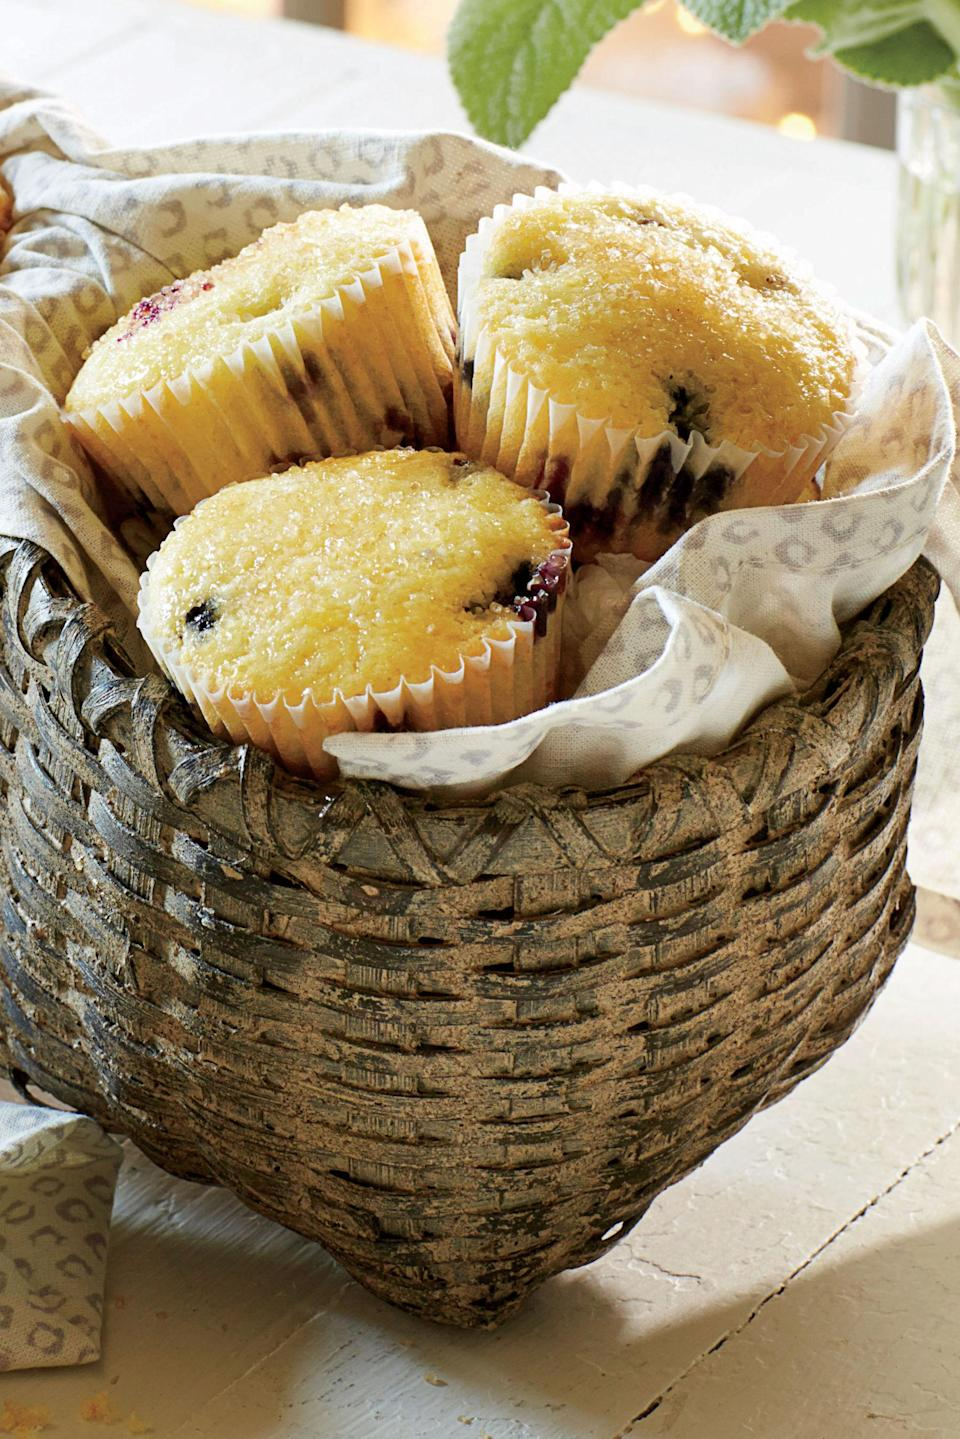 """<p><strong>Recipe: <a href=""""http://www.myrecipes.com/recipe/blueberry-lemon-muffins-1"""" rel=""""nofollow noopener"""" target=""""_blank"""" data-ylk=""""slk:Blueberry-Lemon Muffins"""" class=""""link rapid-noclick-resp"""">Blueberry-Lemon Muffins</a></strong></p> <p>Sprinkle the tops of the glazed muffins with coarse sugar to add texture and a little sparkle. </p>"""